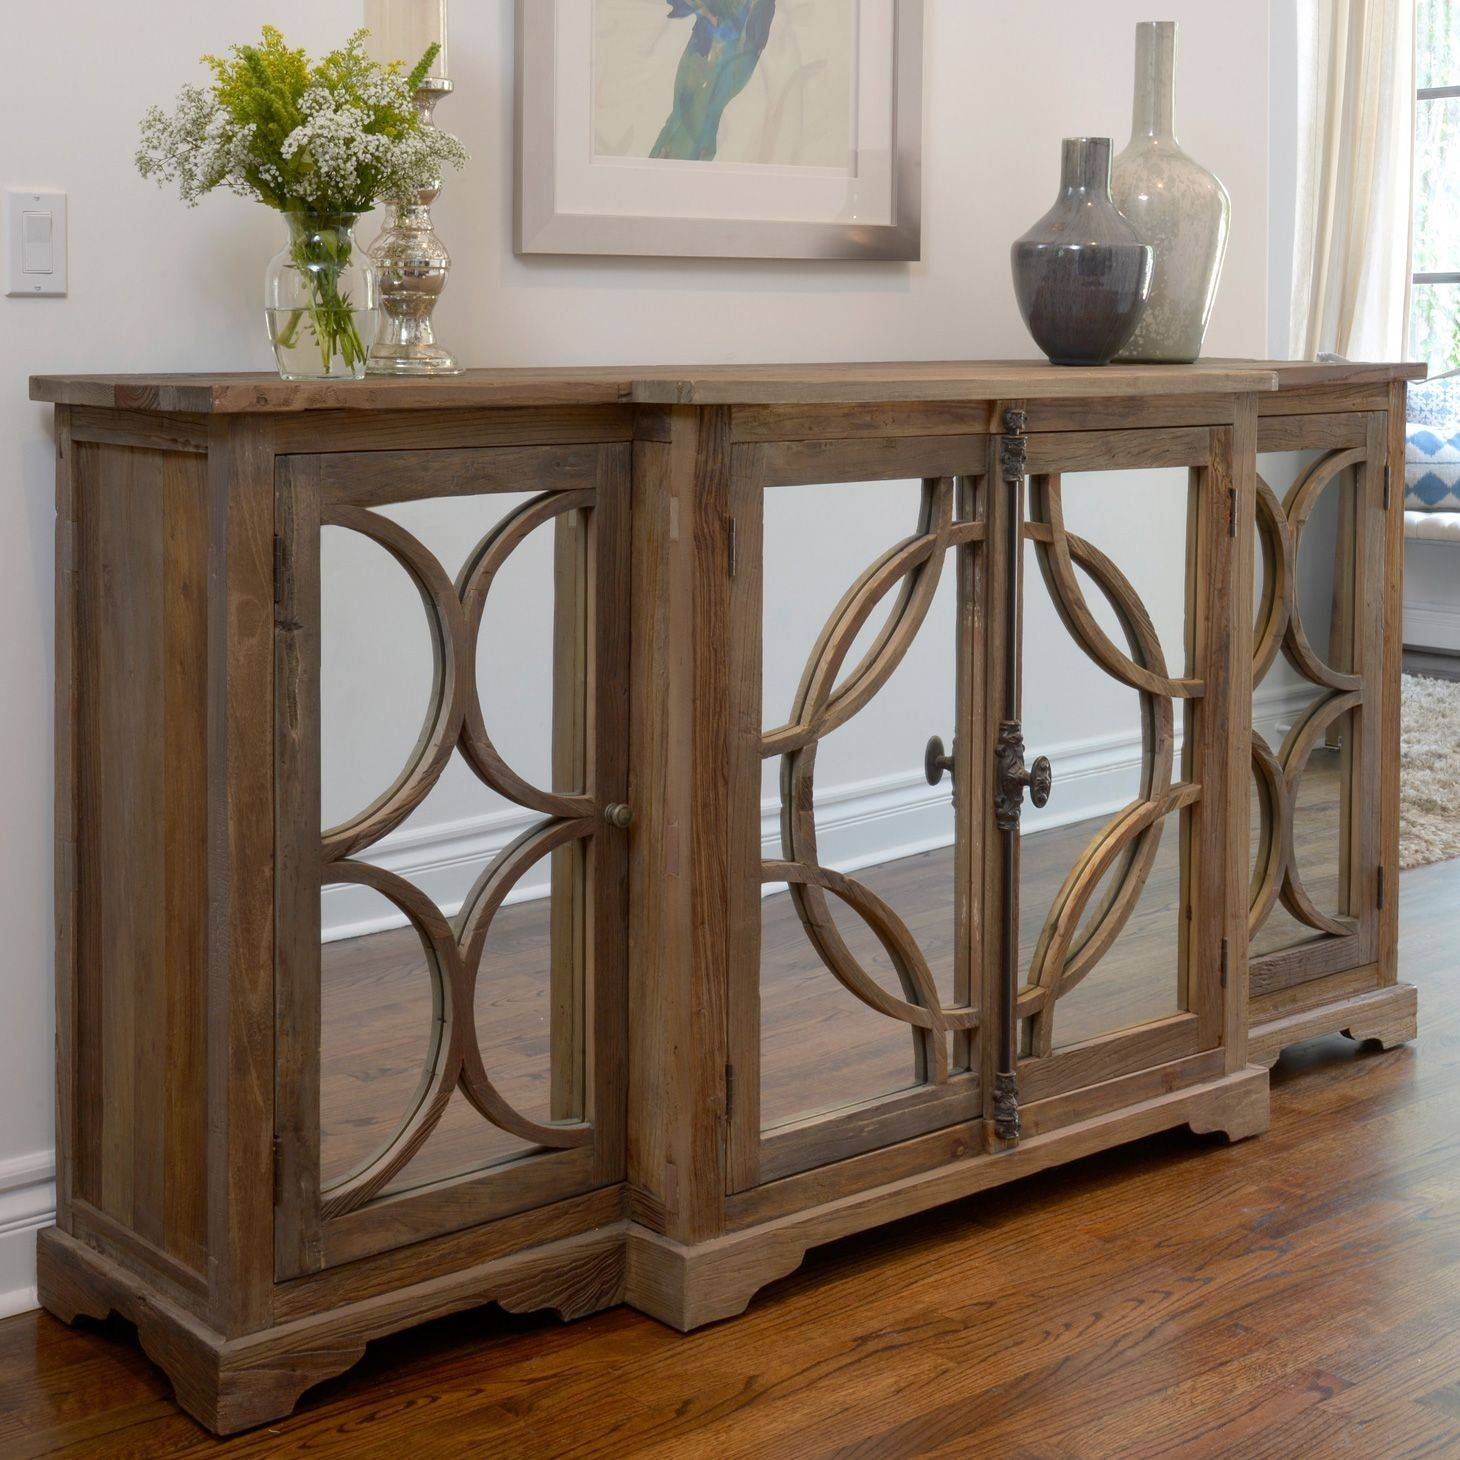 Contemporary Sideboards And Buffets Best Of And Add This Wood Regarding Most Popular Overstock Sideboards (#5 of 15)